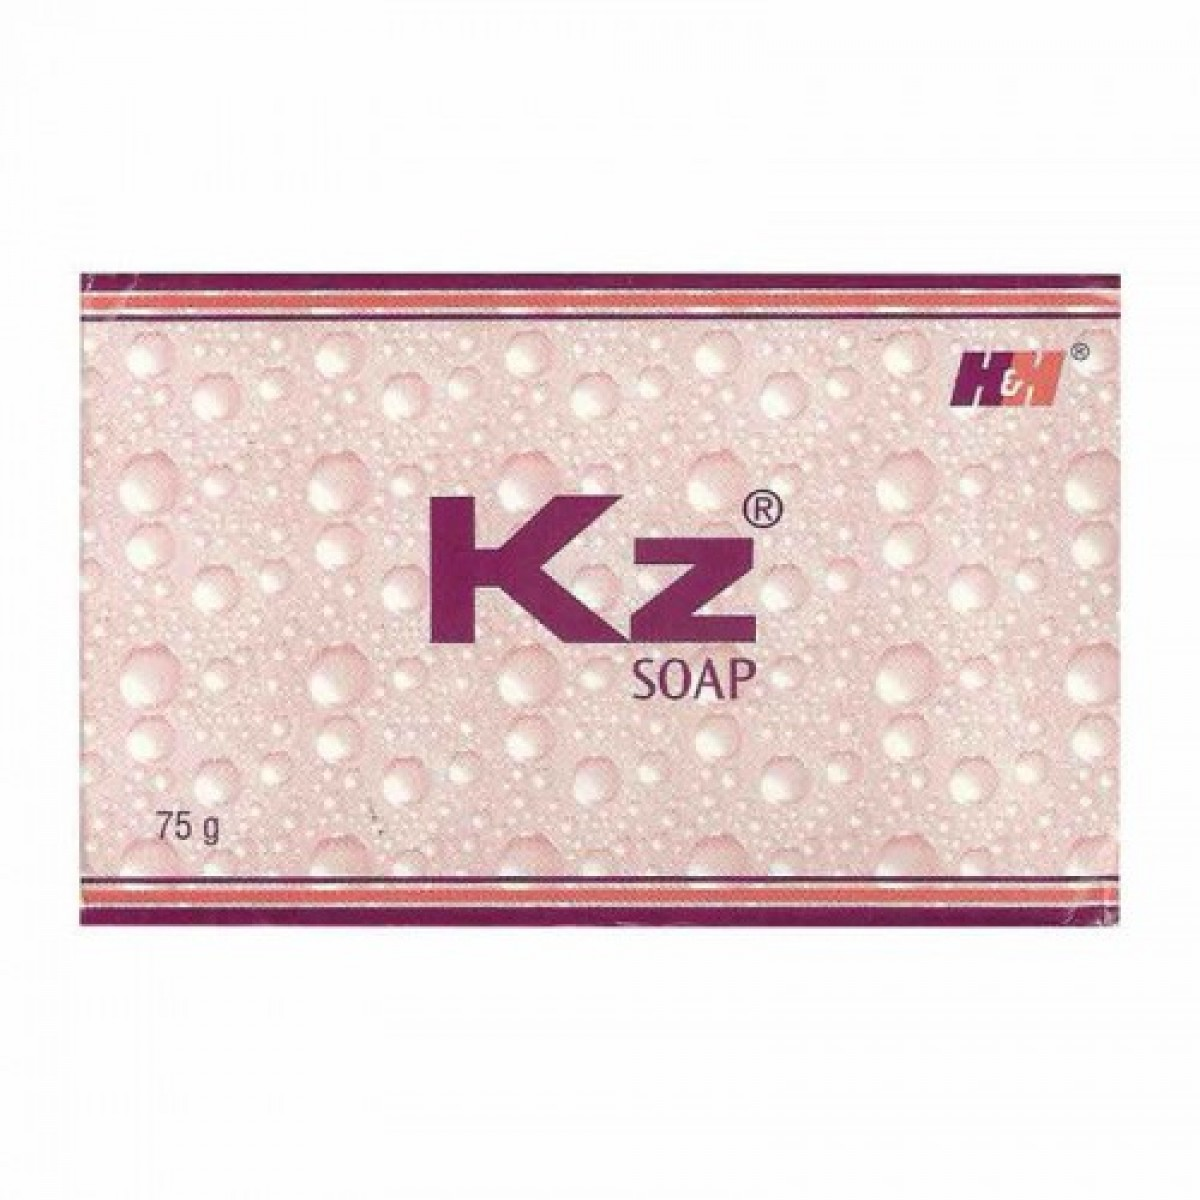 kz soap 75G pack of 3